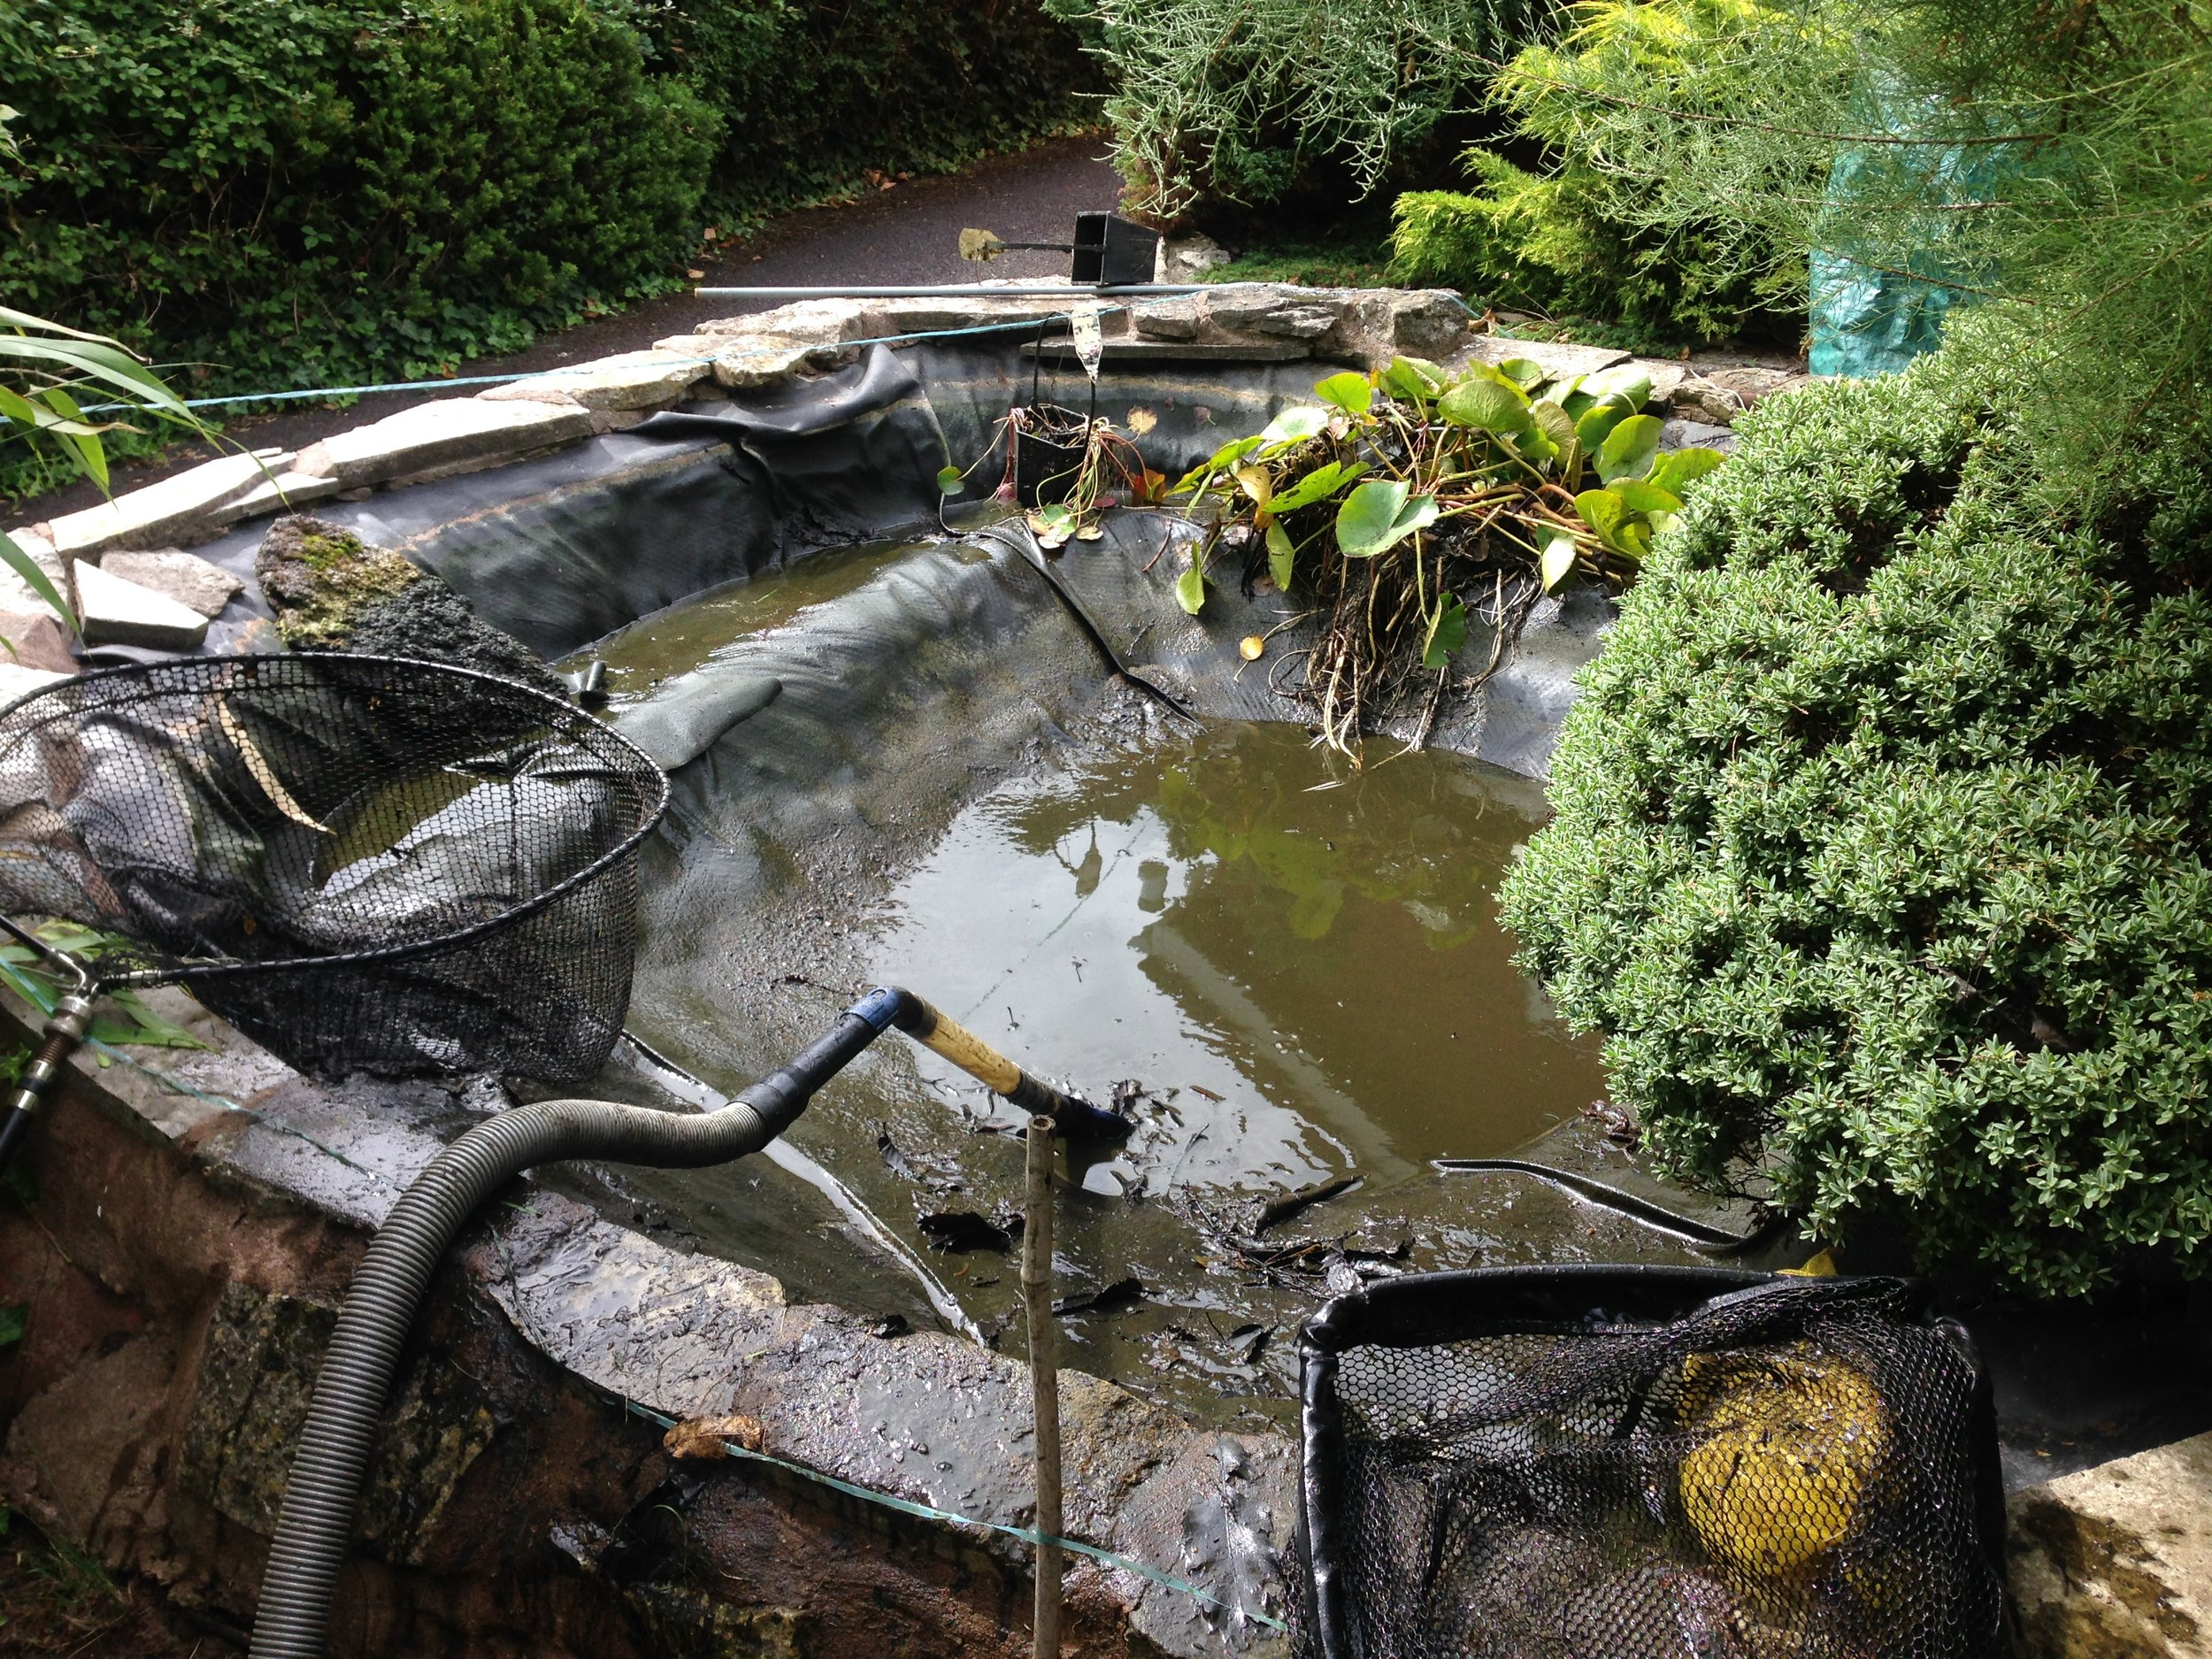 This pond was in desperate need of a Full Drain Down & Clean